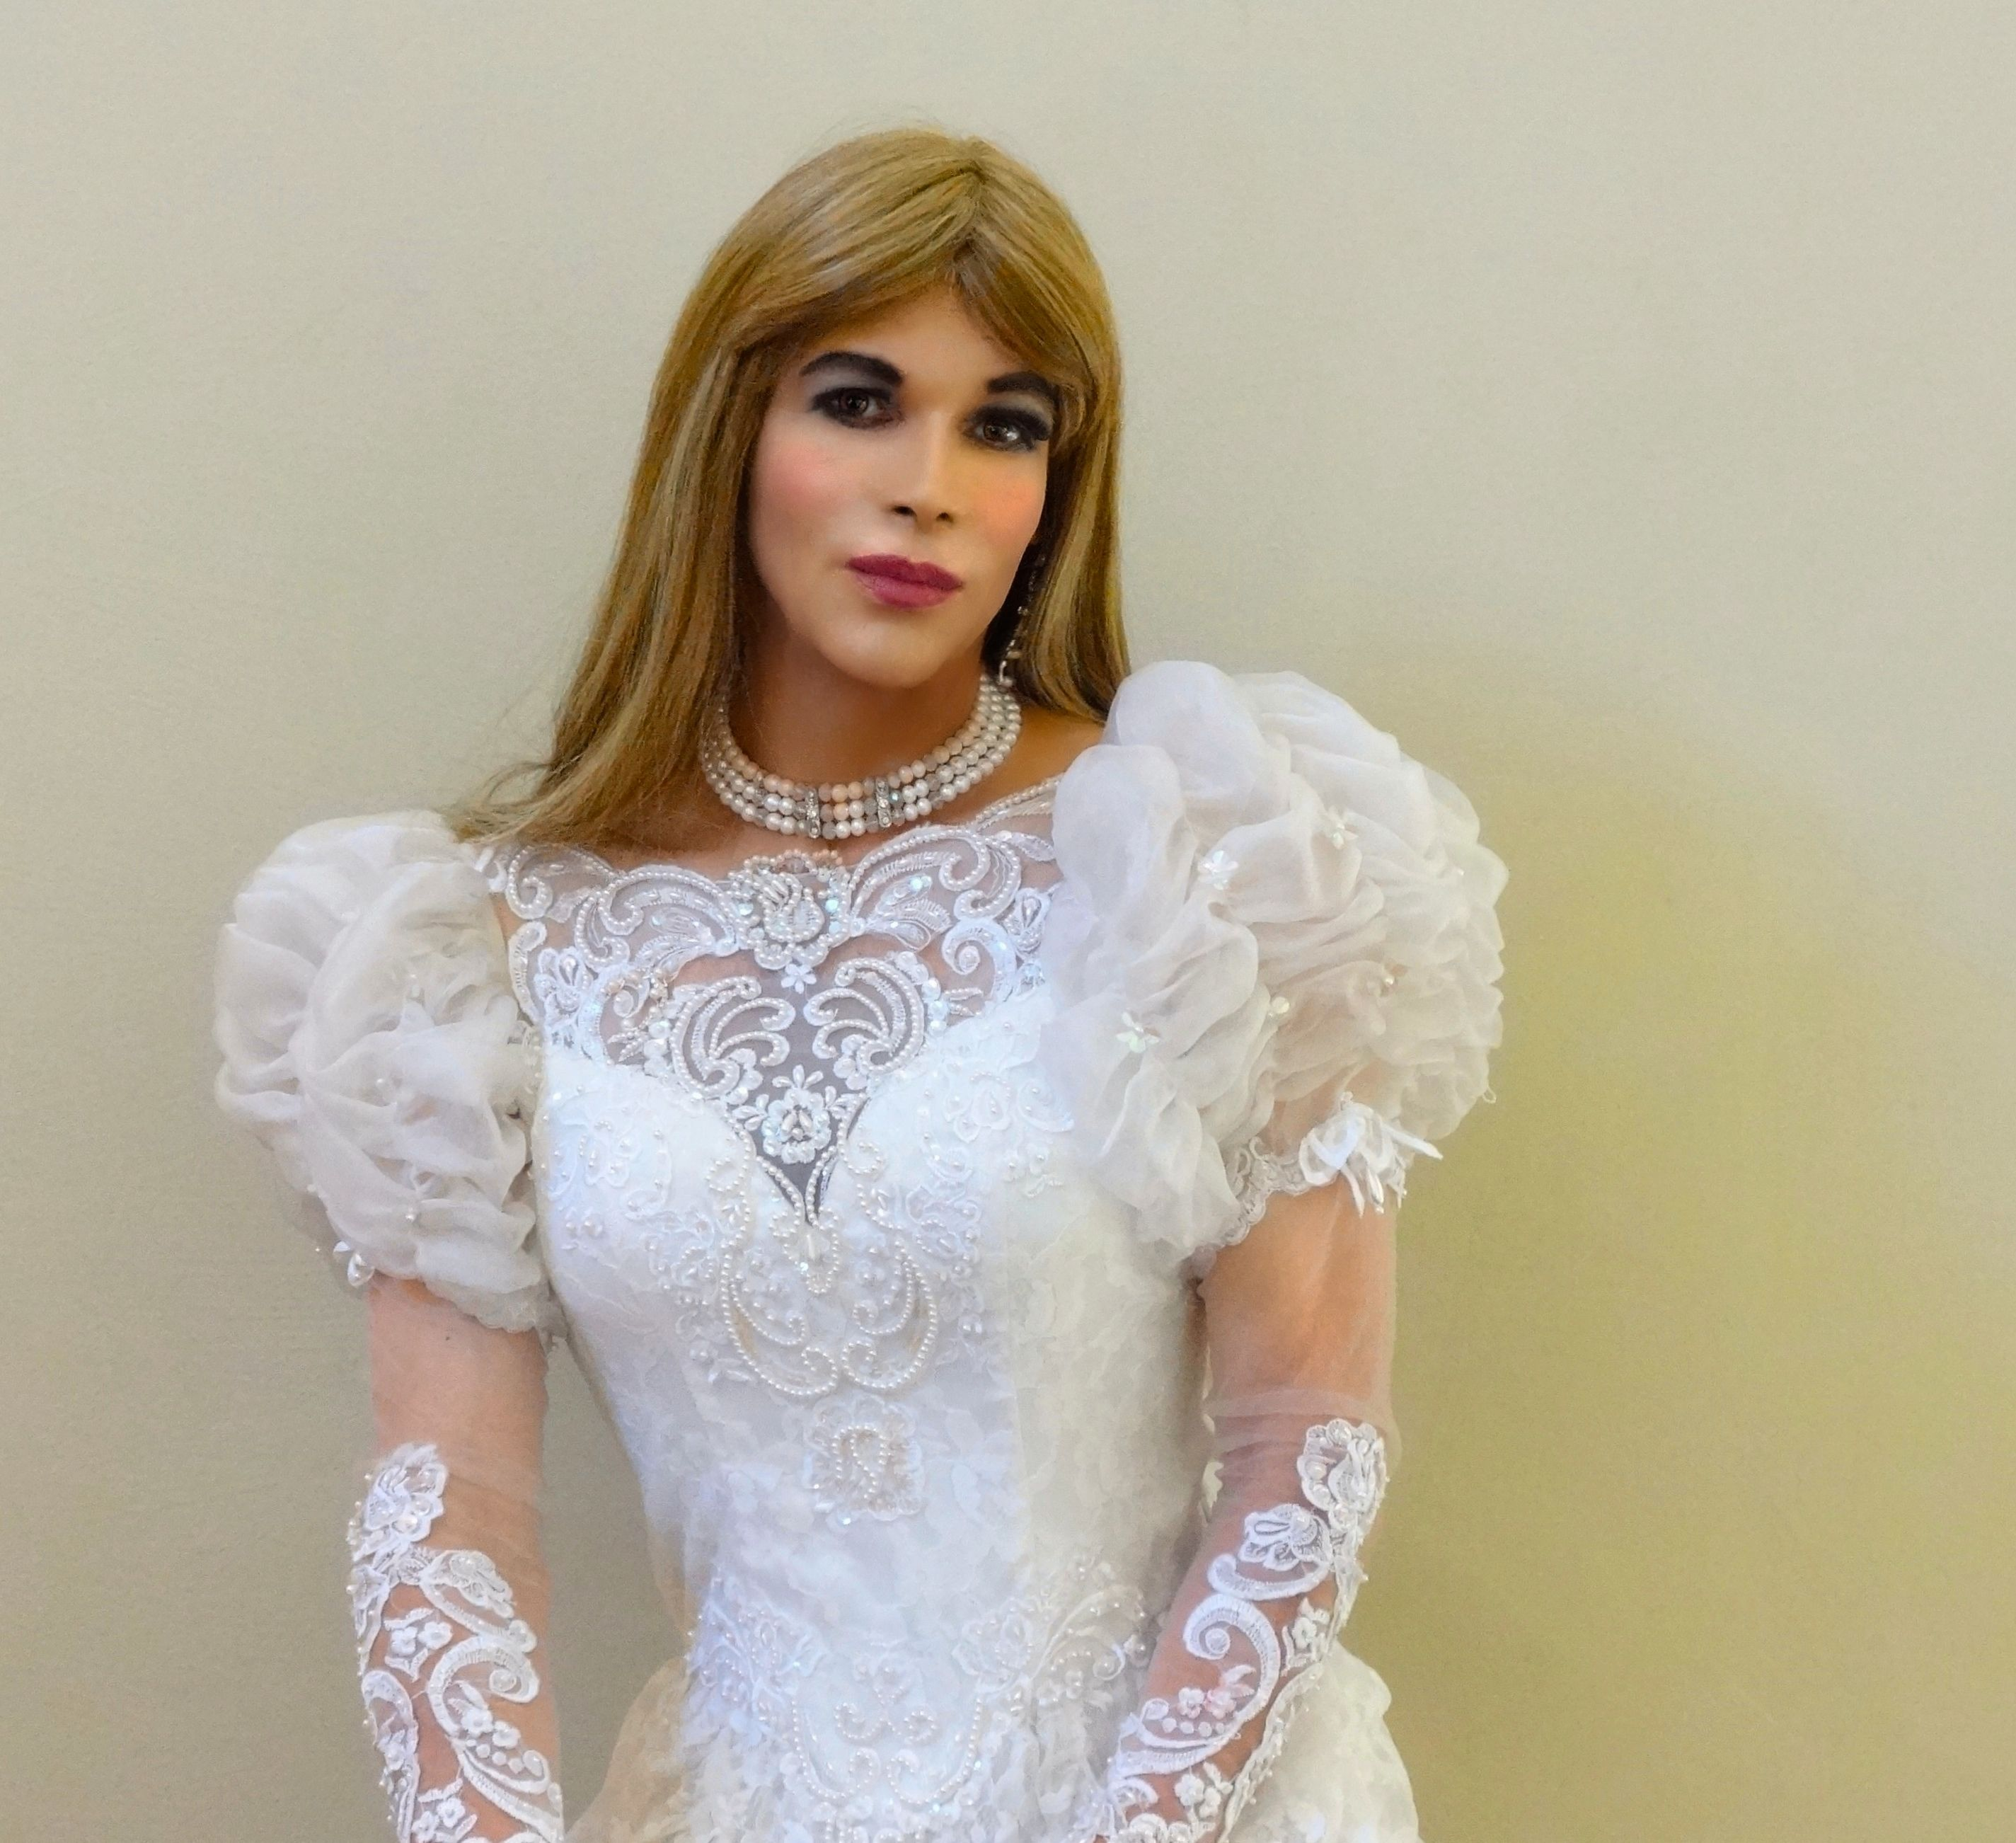 Bride photo transvestite